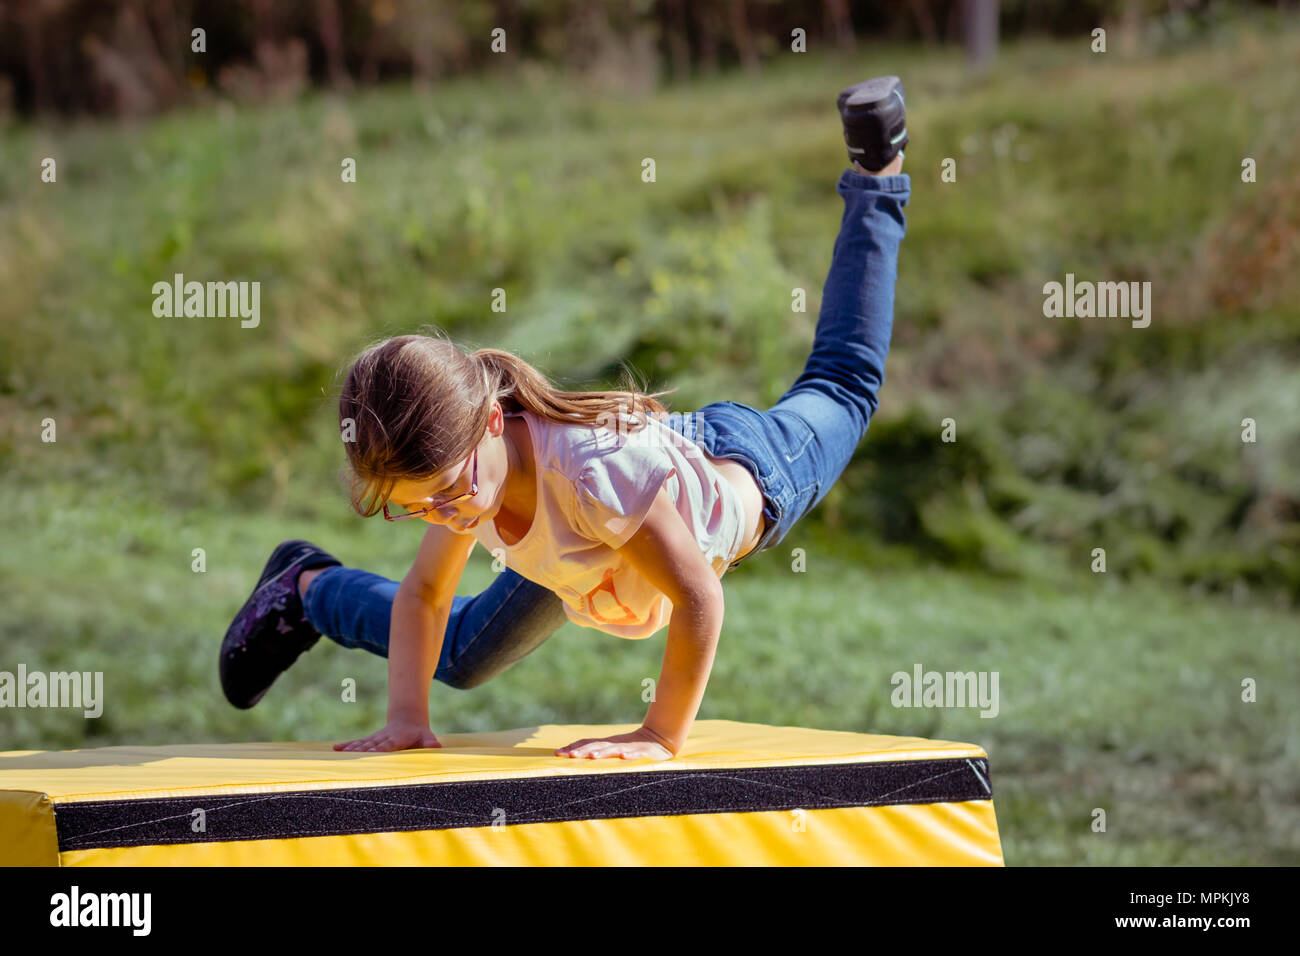 Girl Child Practicing (Practising) Parkour Gymnastics Outside on Vaulting Horse - Stock Image